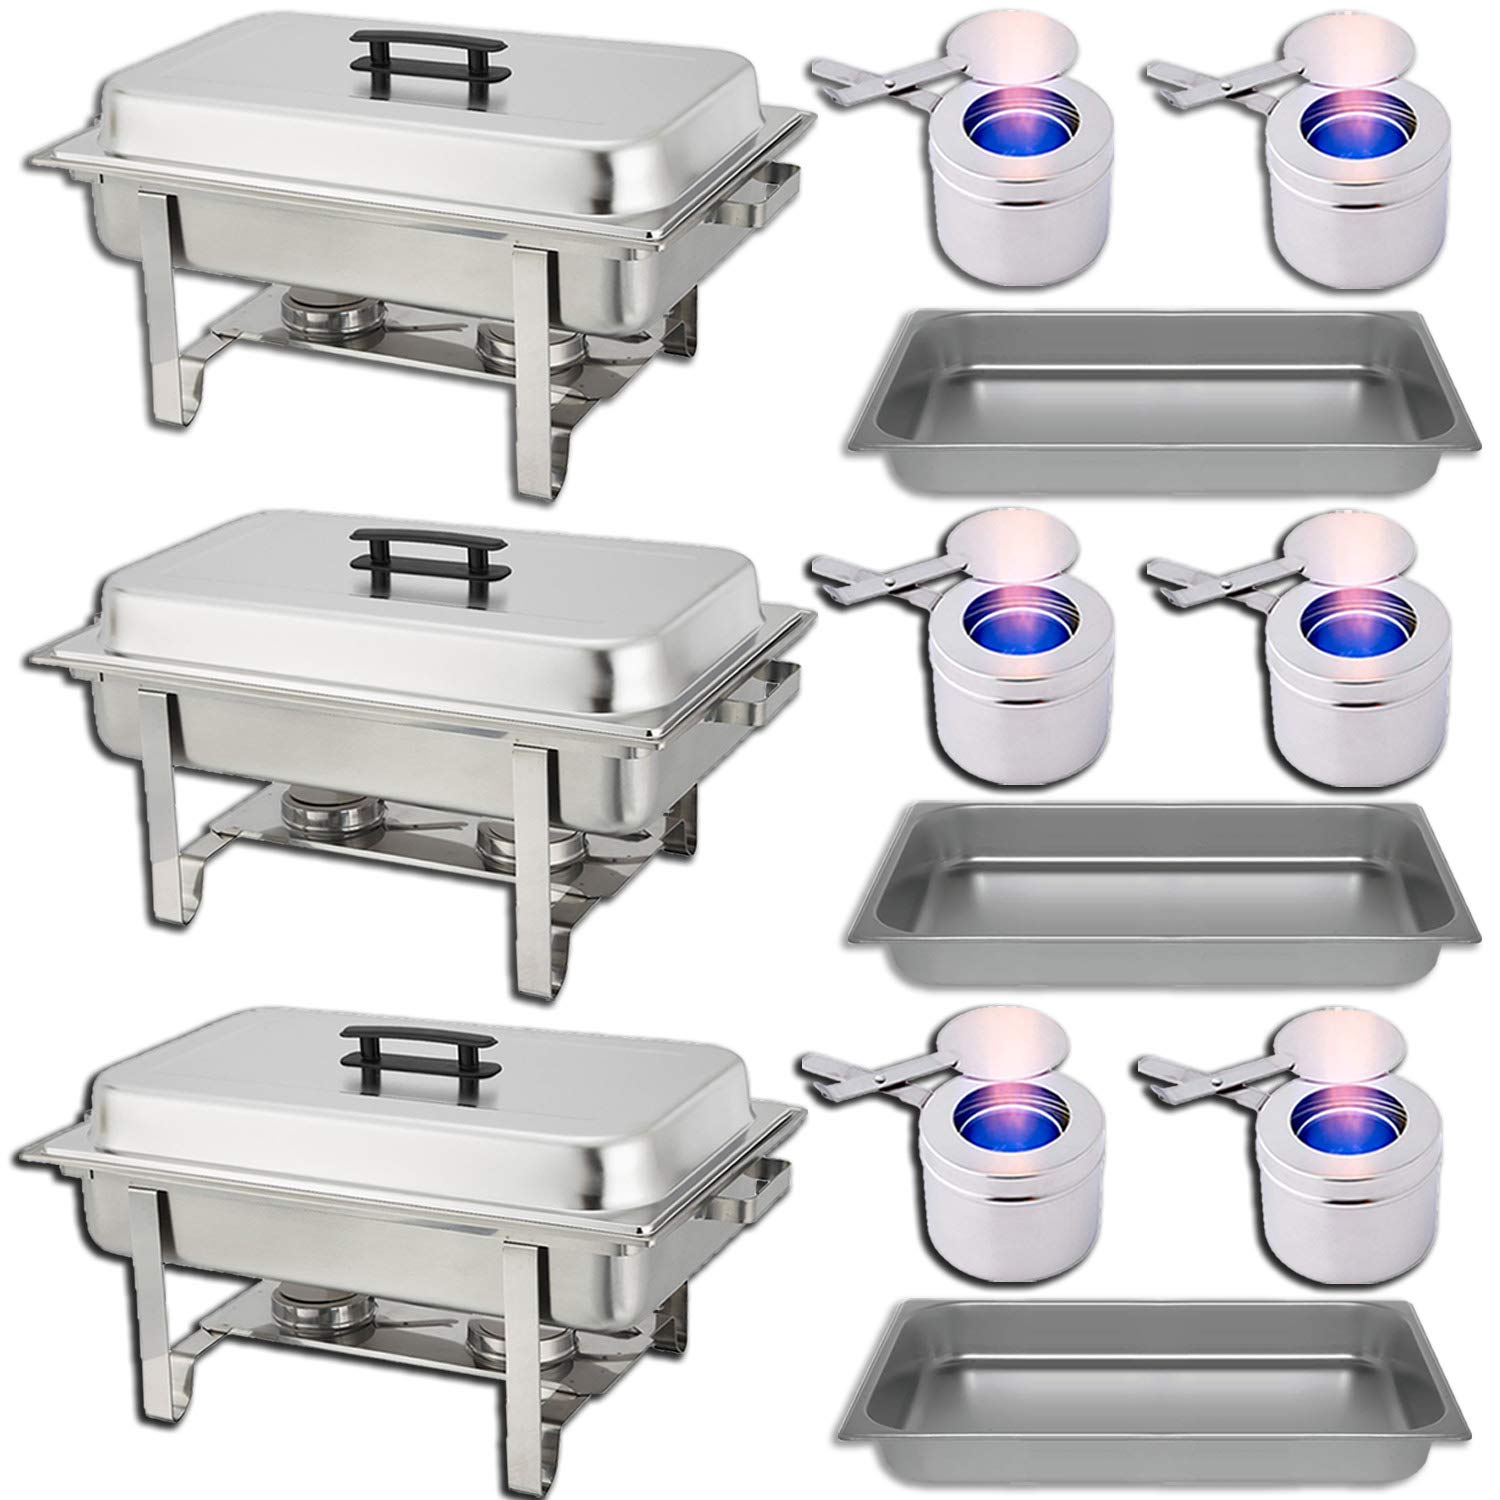 Chafing Dish Buffet Set - Water Pan + Food Pan (8 qt) + Frame + 2 Fuel Holders - Stainless-Steel Warmer Kit 3 Pack